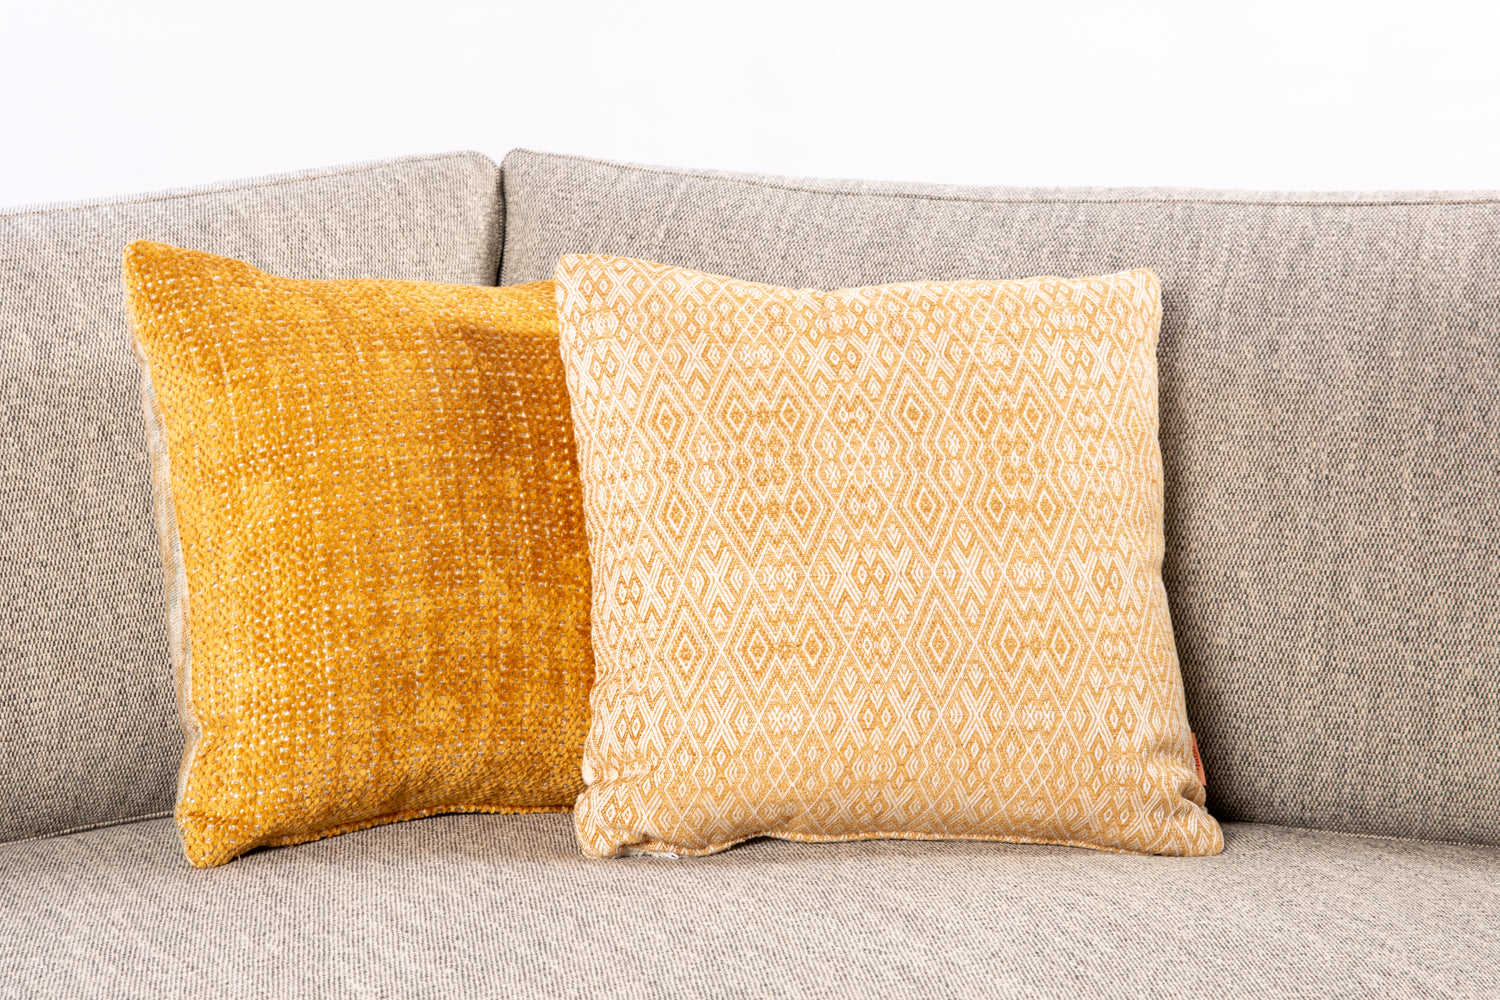 ffabb toss pillows RADG fabrics, woven diamond, chenille